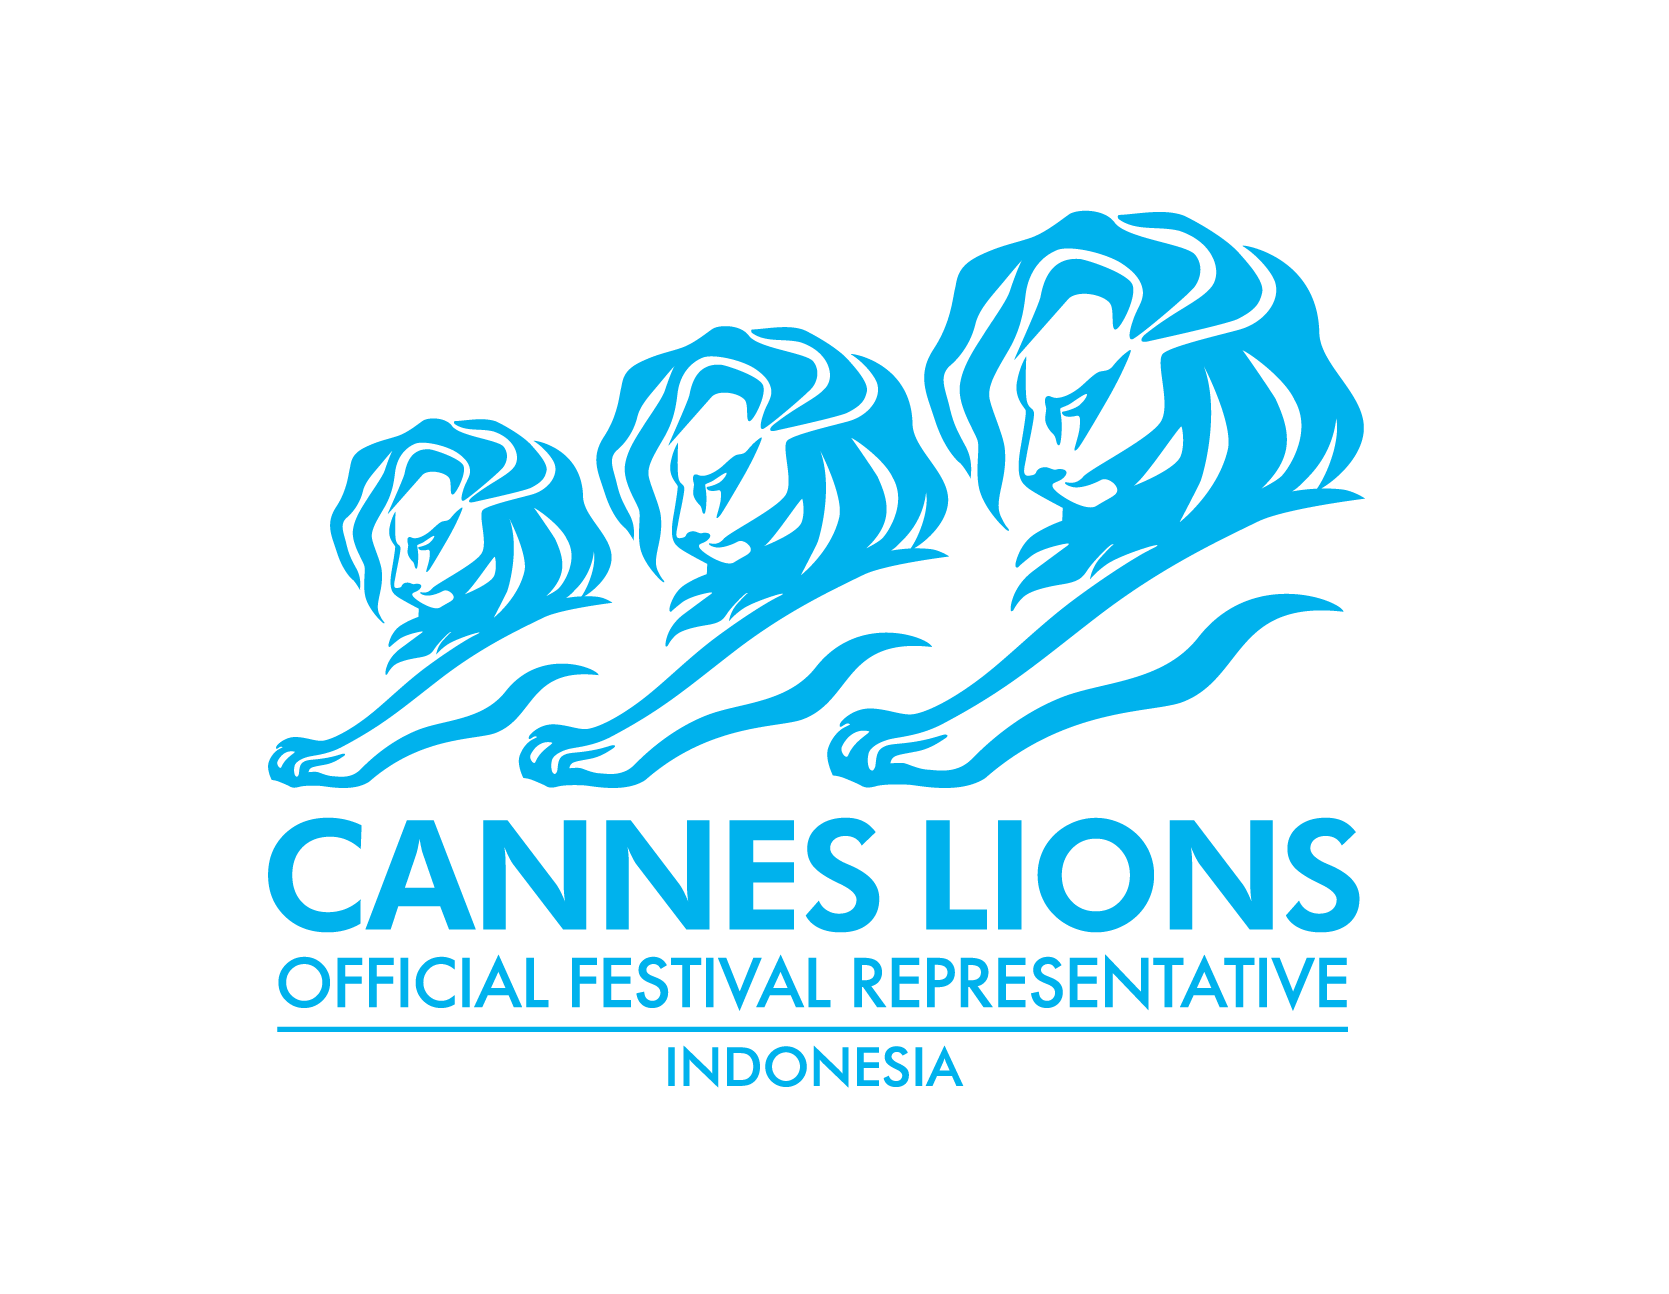 https://www.canneslions.com/about/represent/find-your-rep